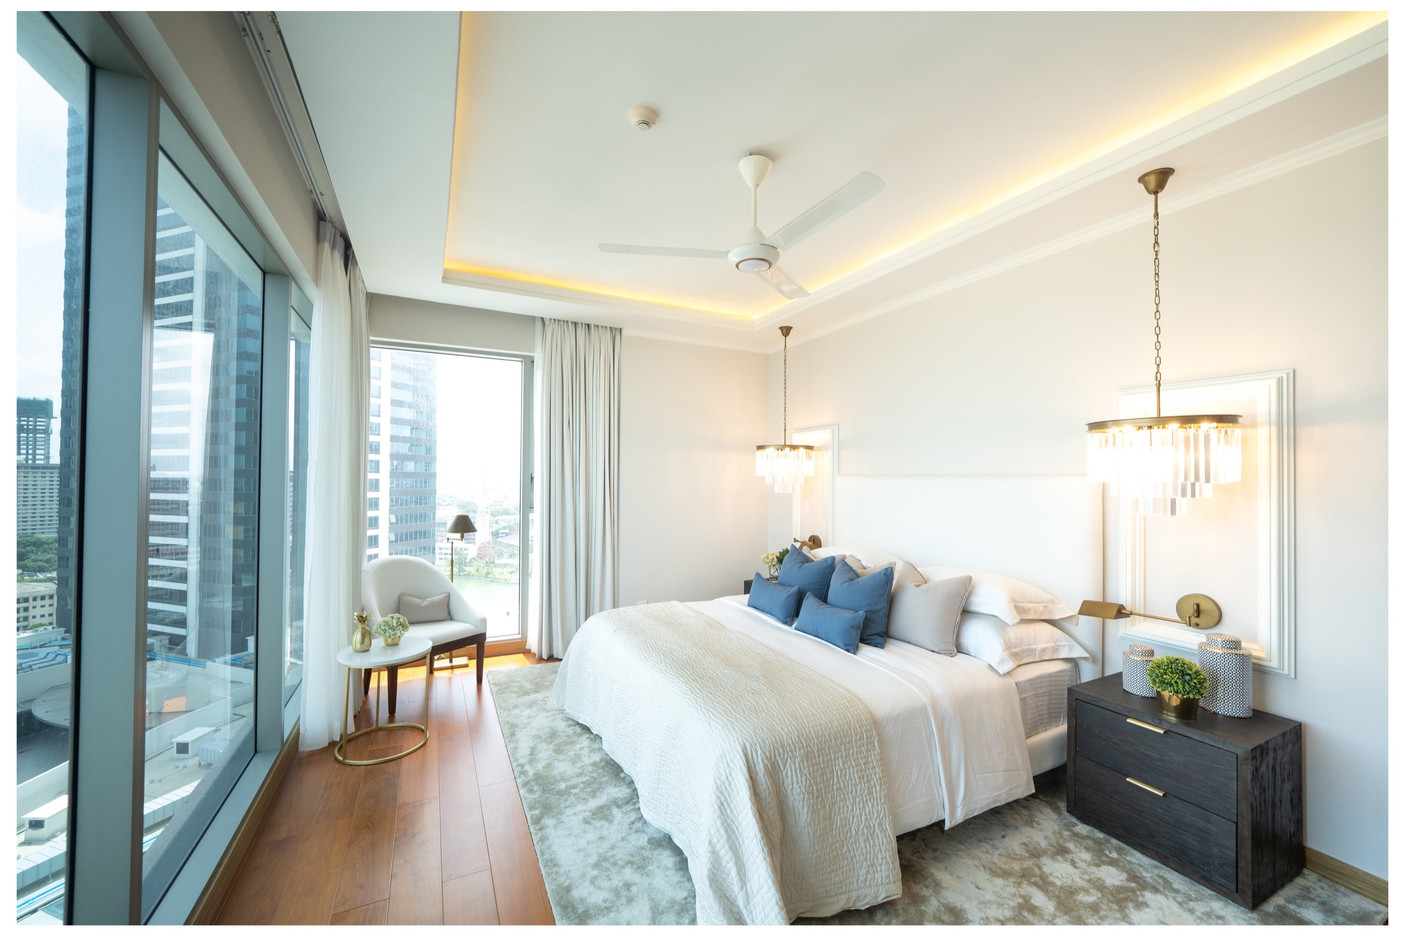 Bedroom at One Galle Face Residences by Cretive Heritage Interiors